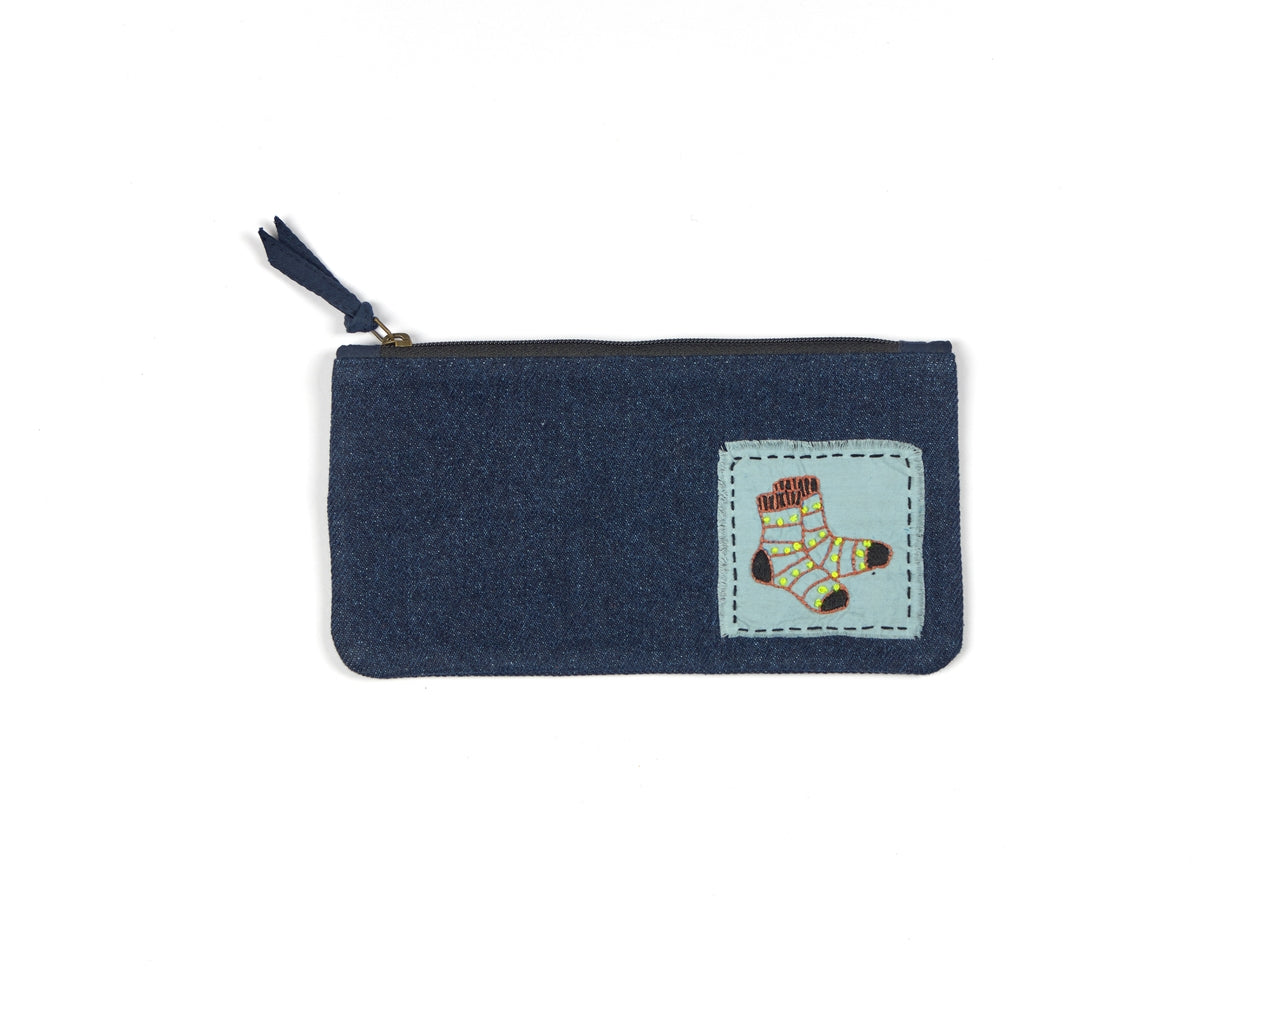 Quirky Socks Vanity Pouch